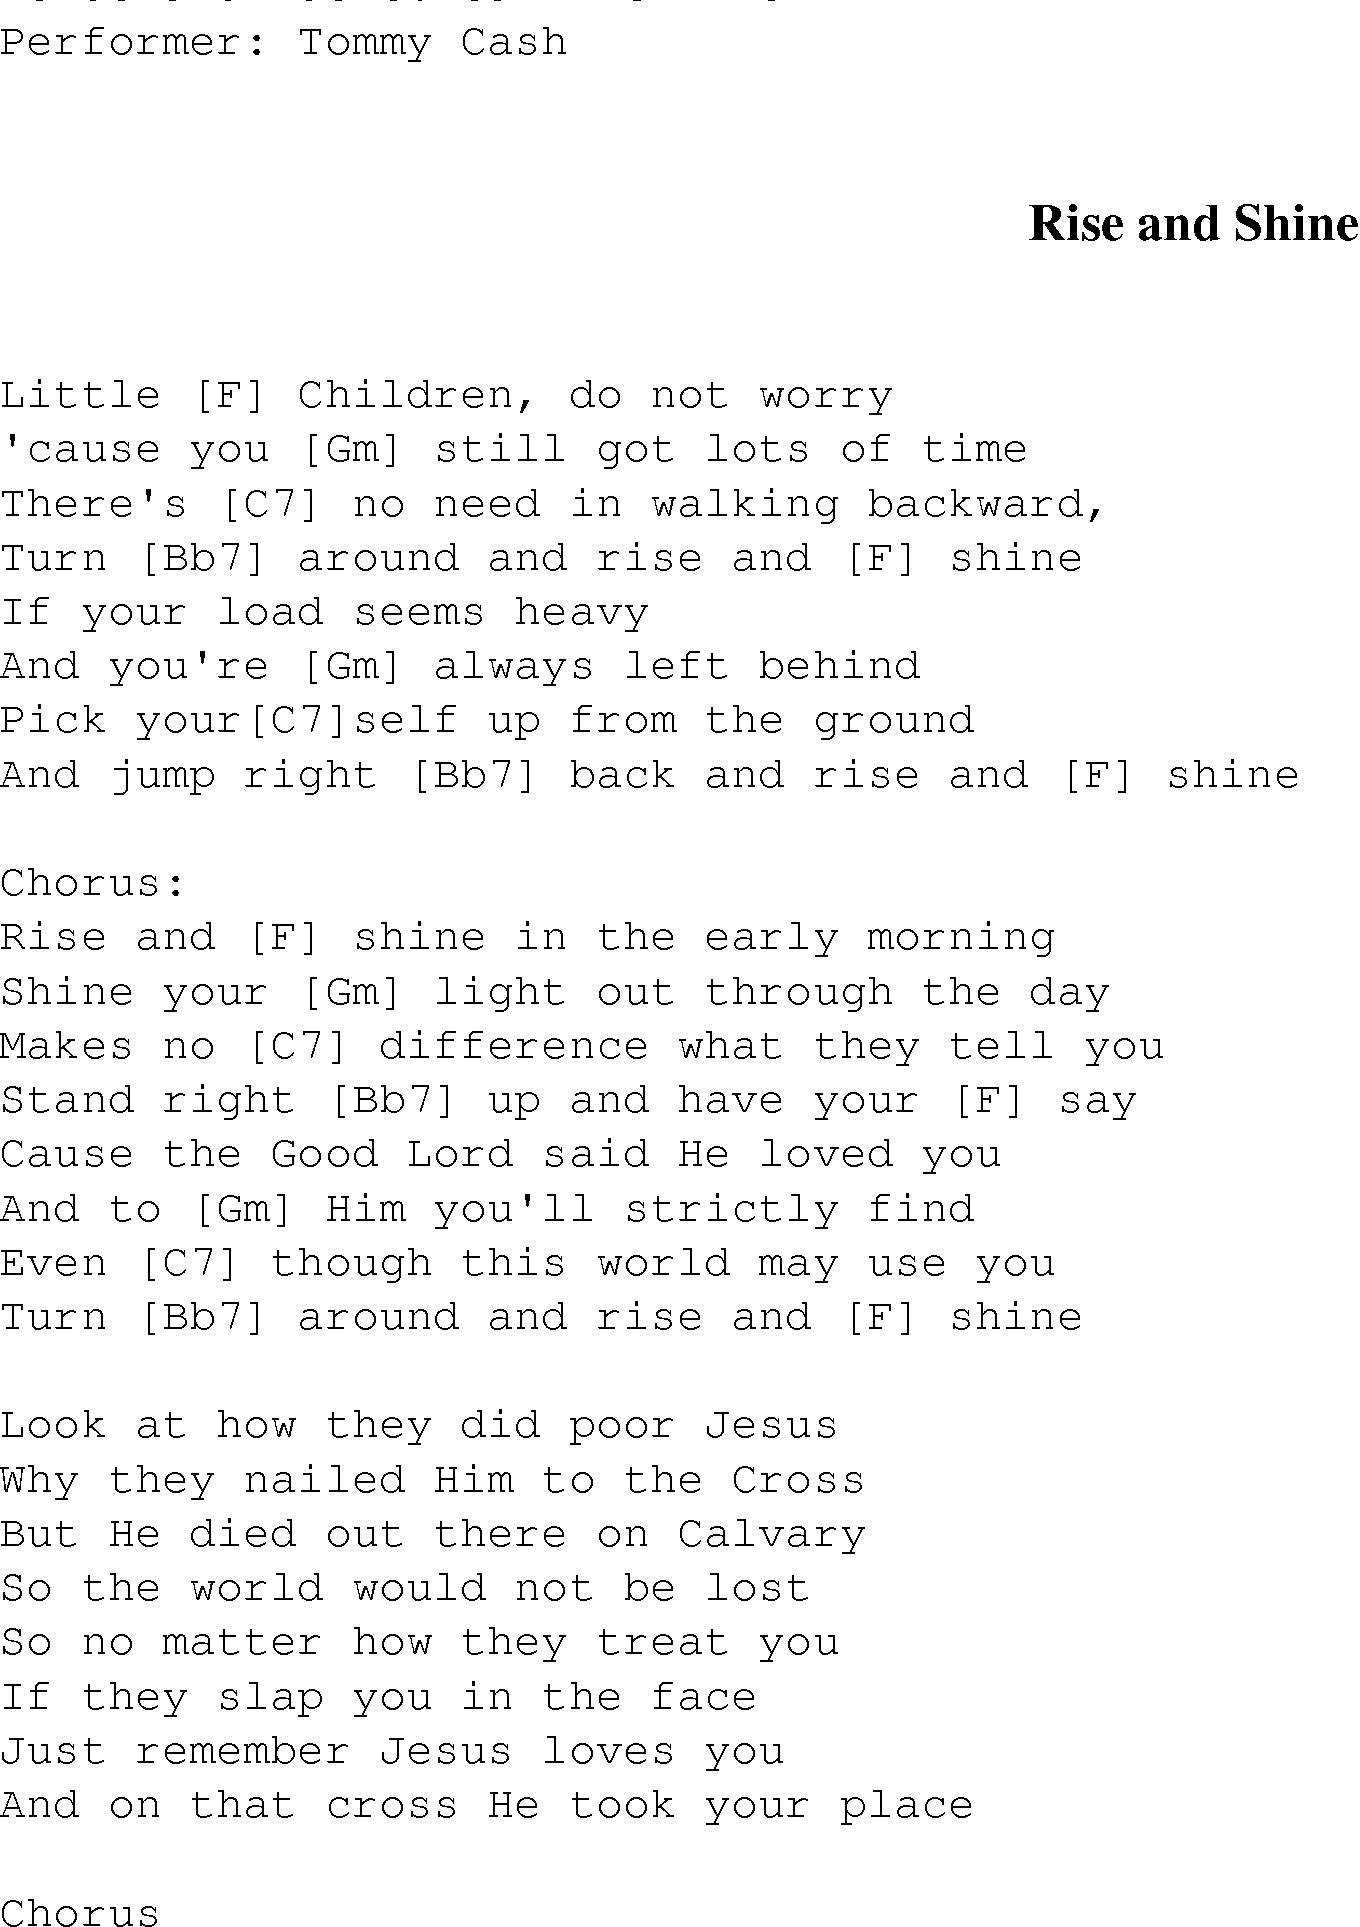 Rise And Shine Christian Gospel Song Lyrics And Chords